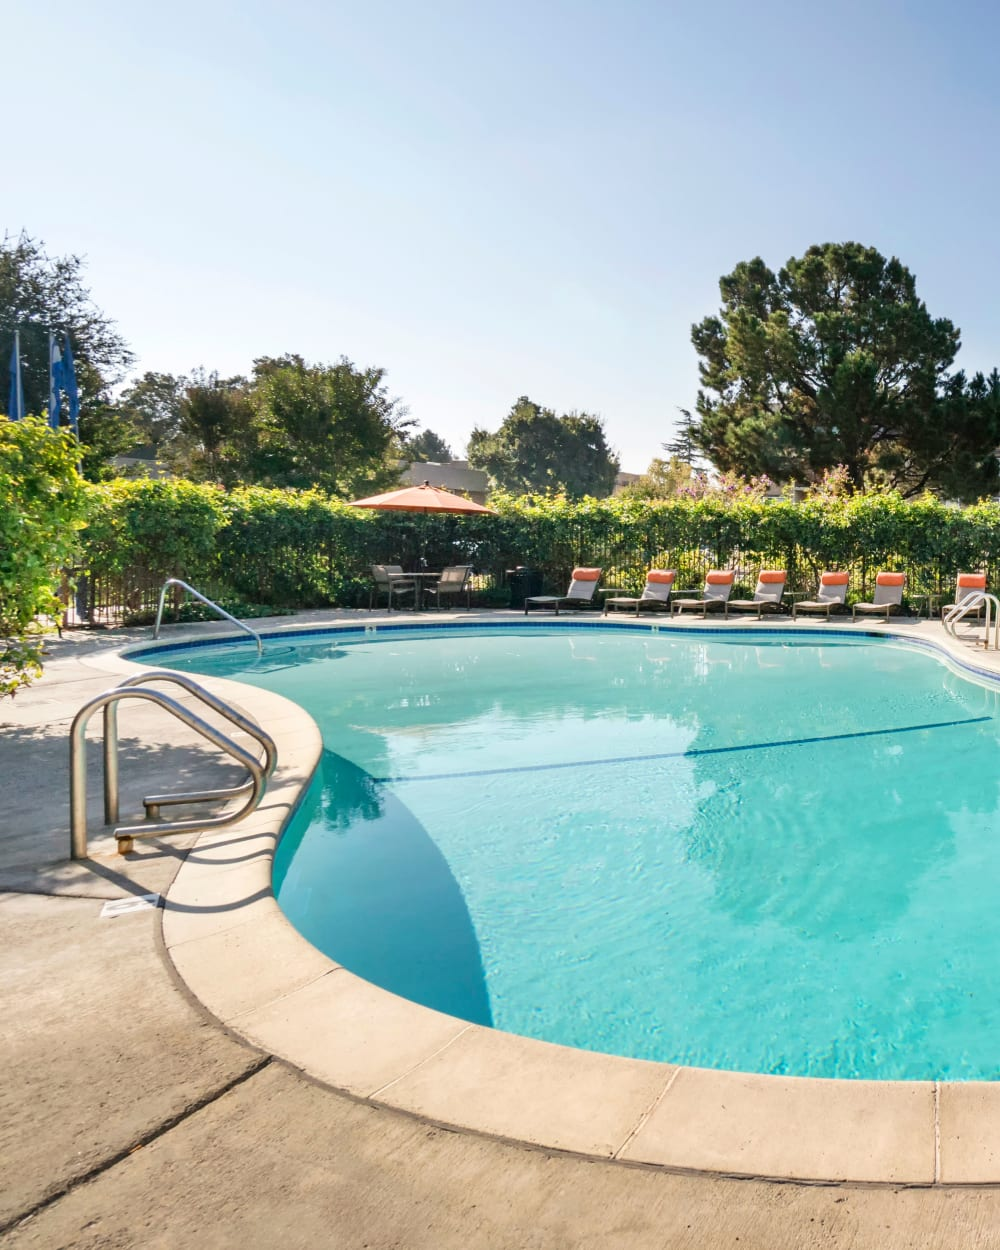 Swimming pool area on a peaceful sunny morning at Waterstone Fremont in Fremont, California